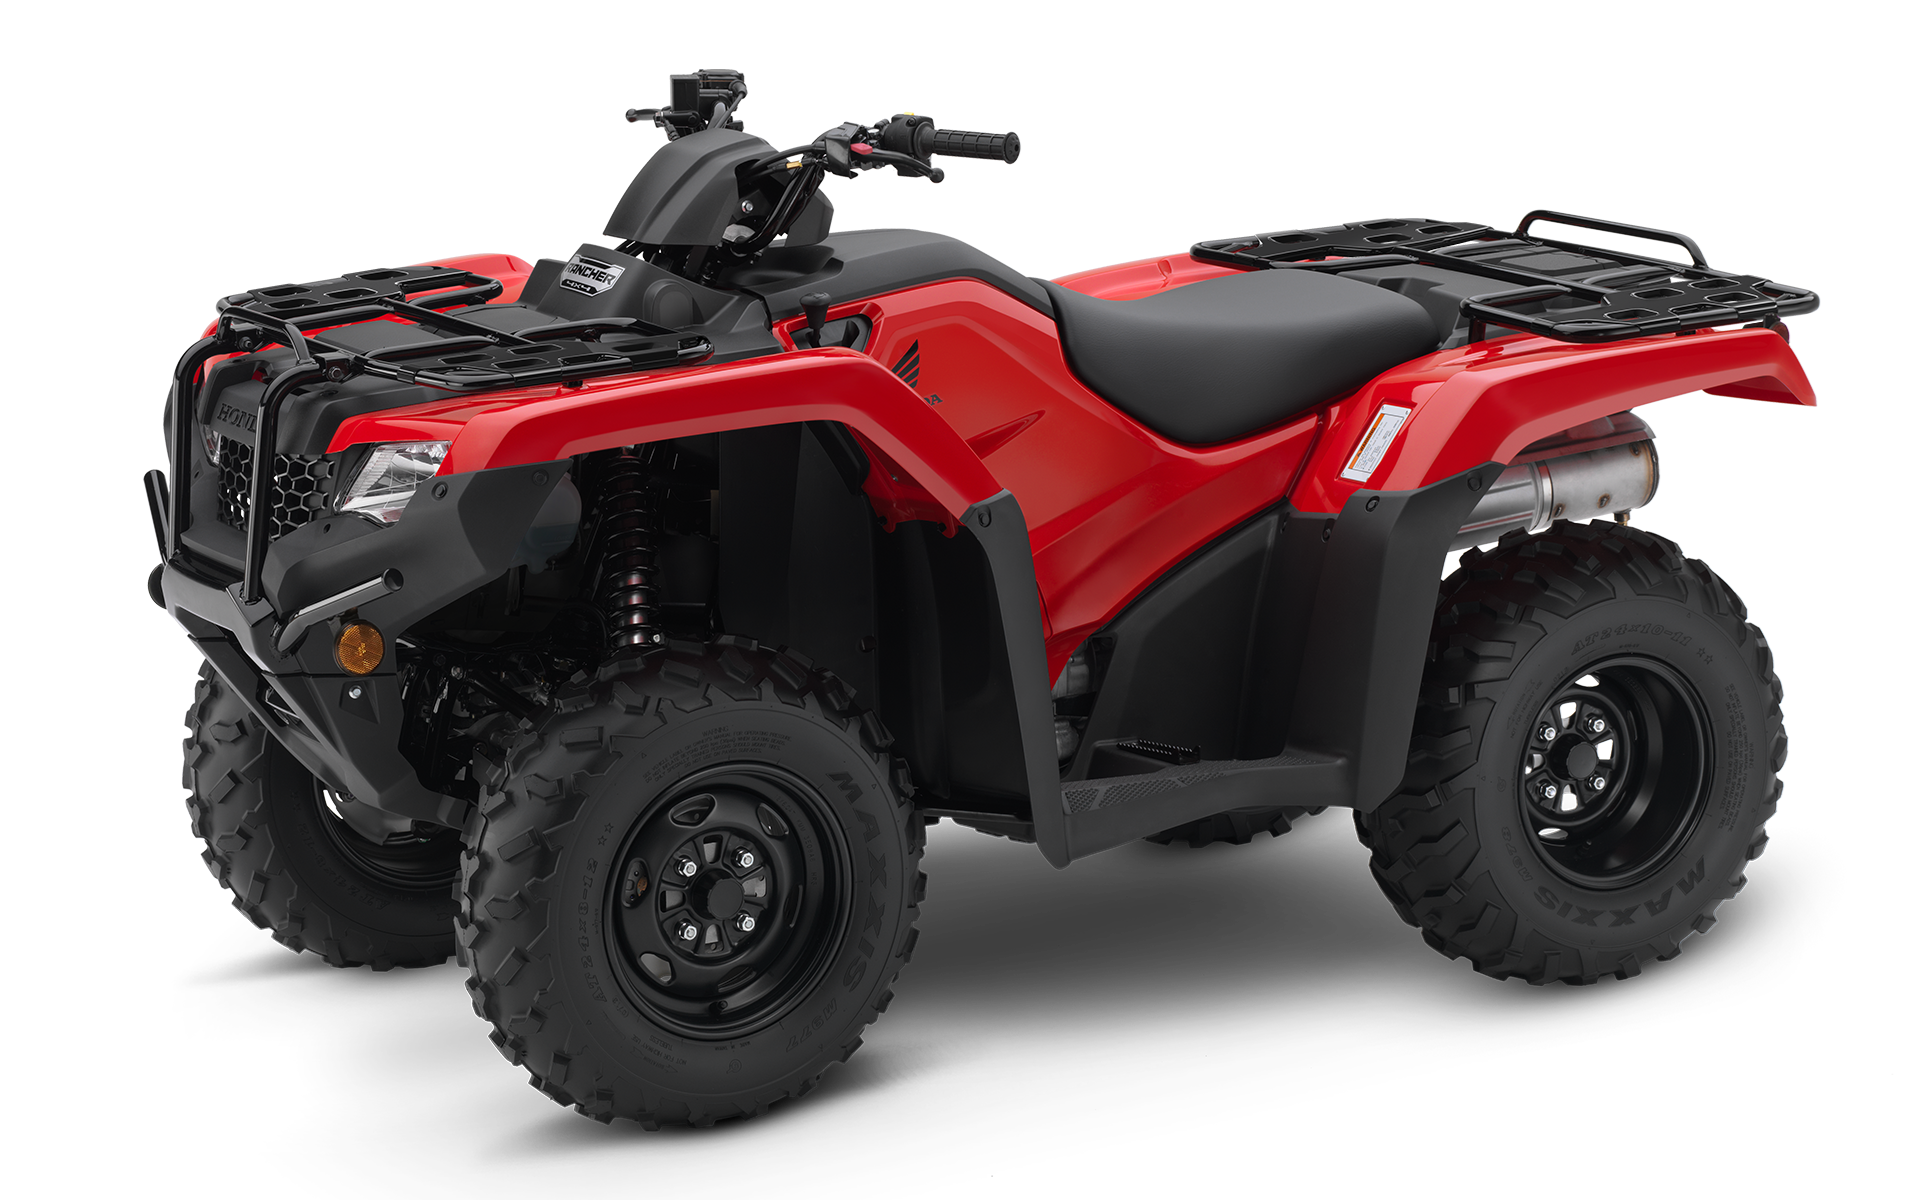 Rouge patriote TRX420